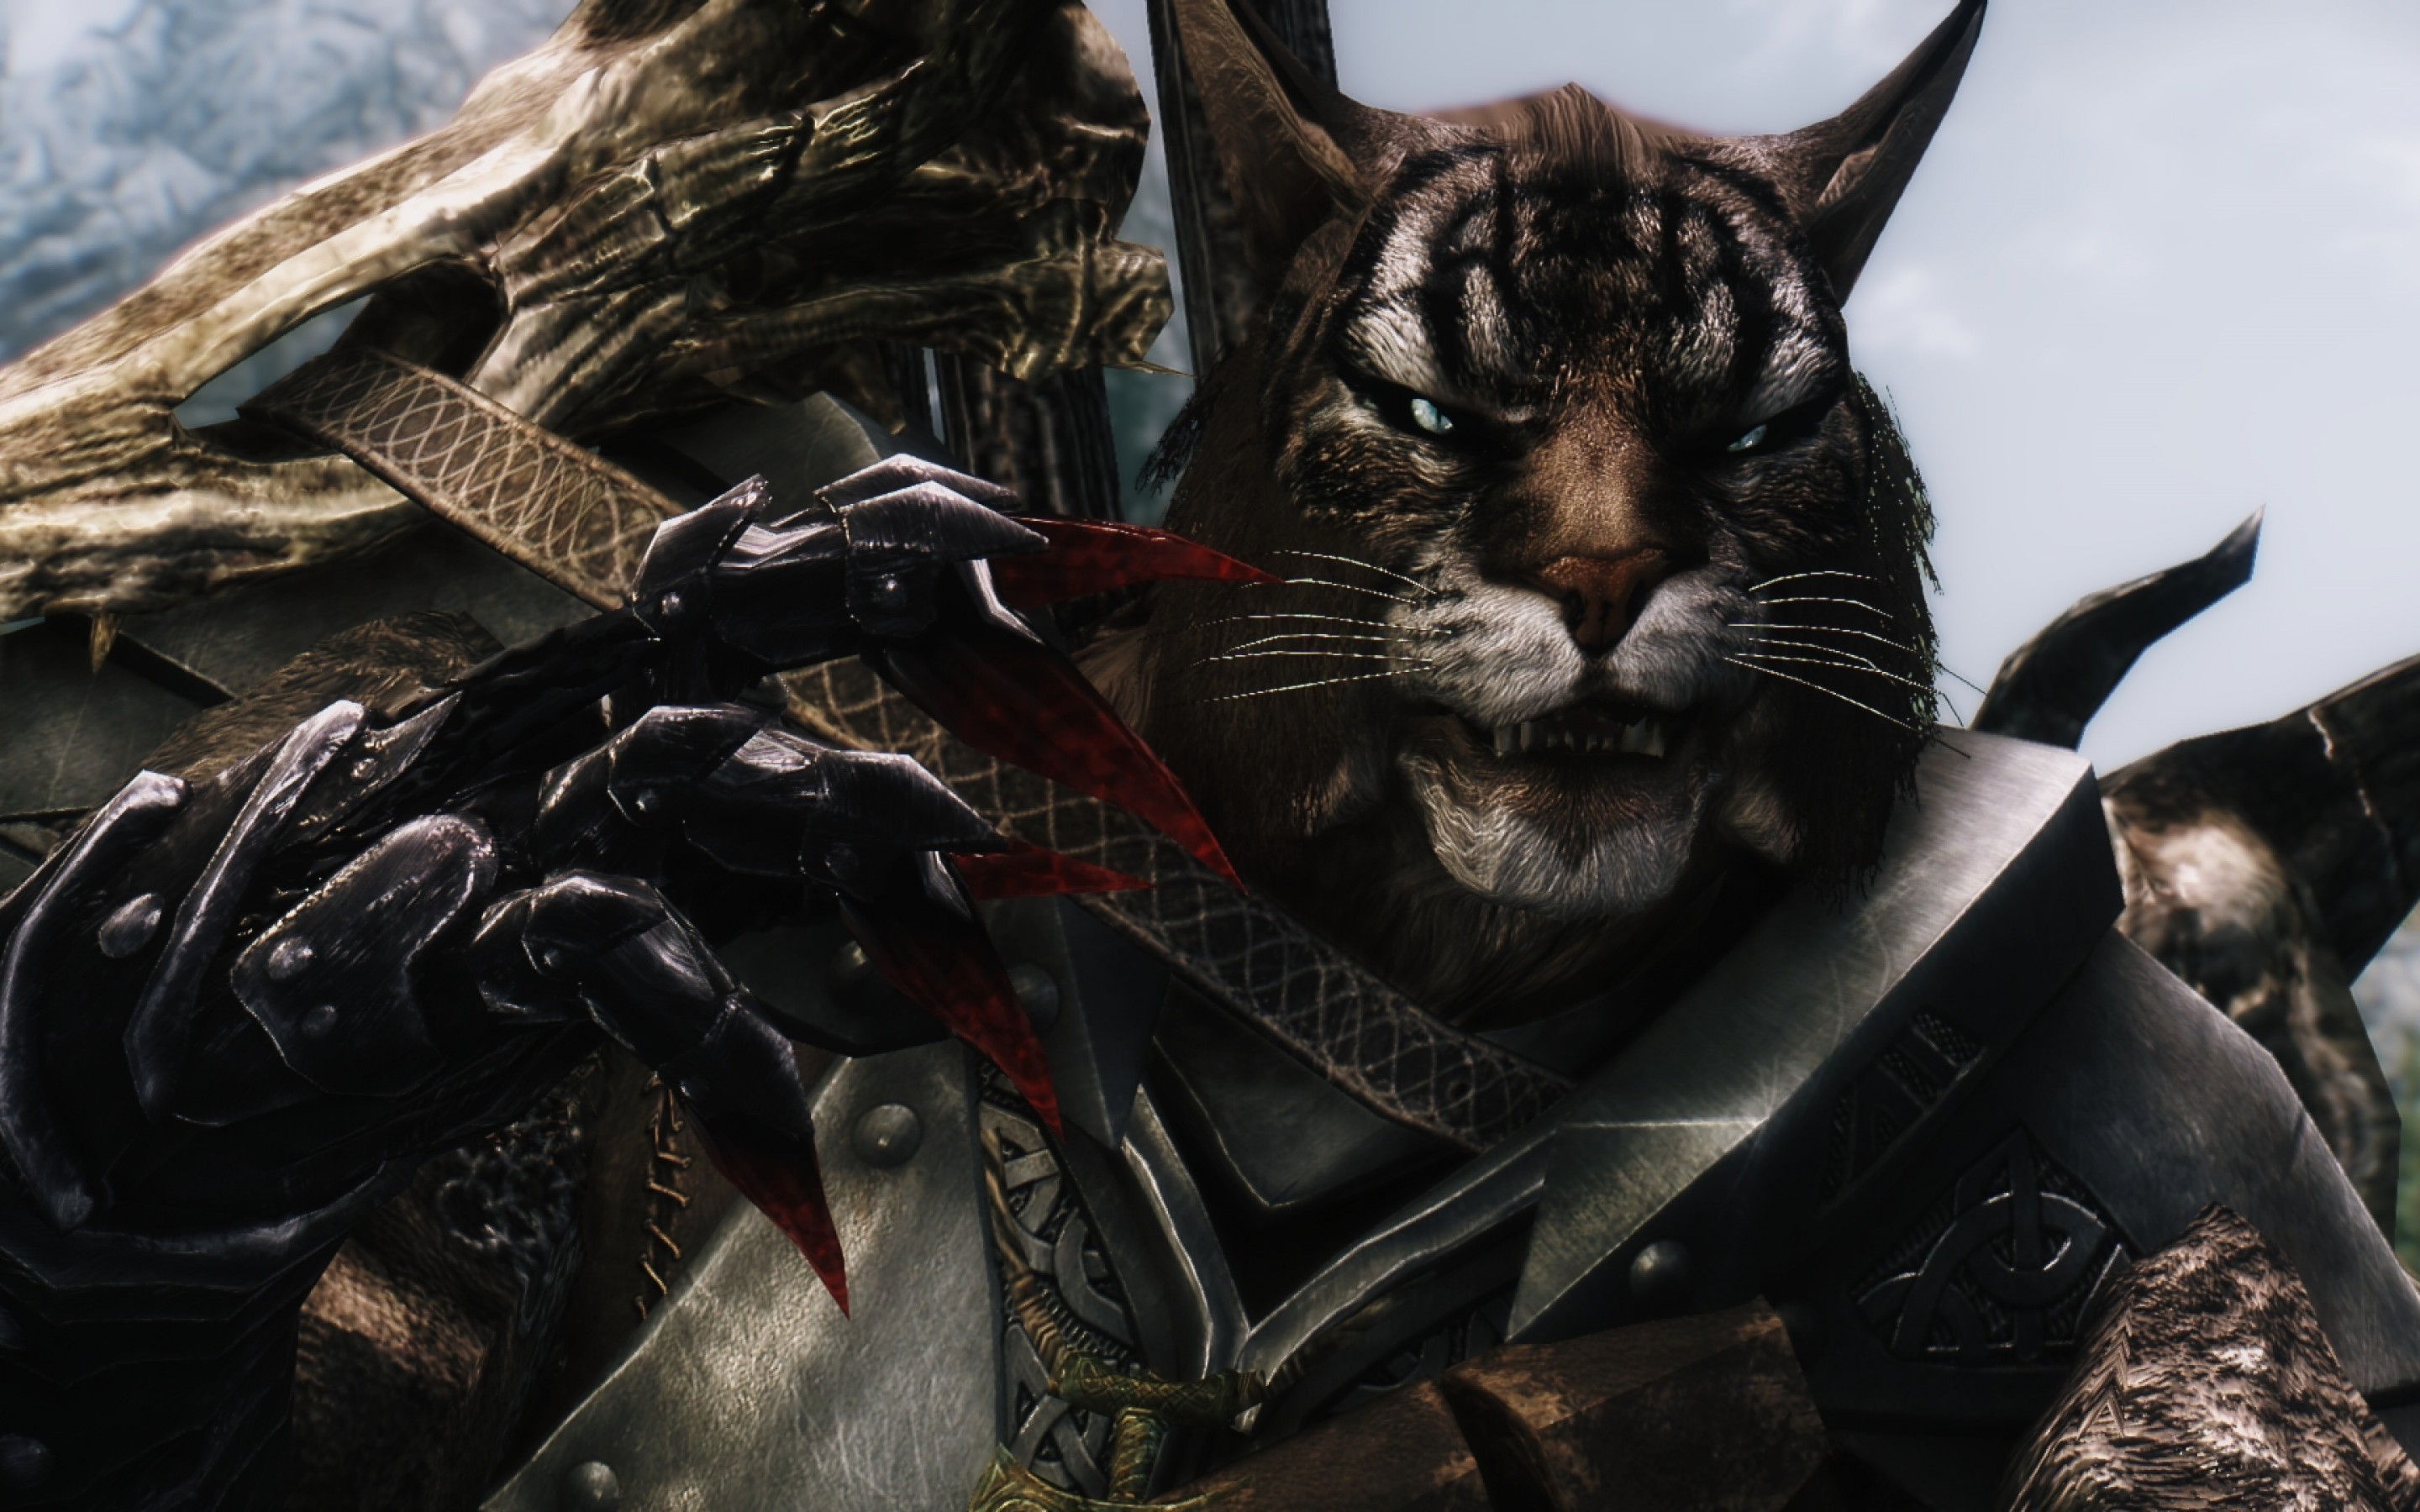 It's 2015, and somehow we're still interested in Skyrim, a game that came out in 2011. That's in part to the vast, open-world that Bethesda created, ...